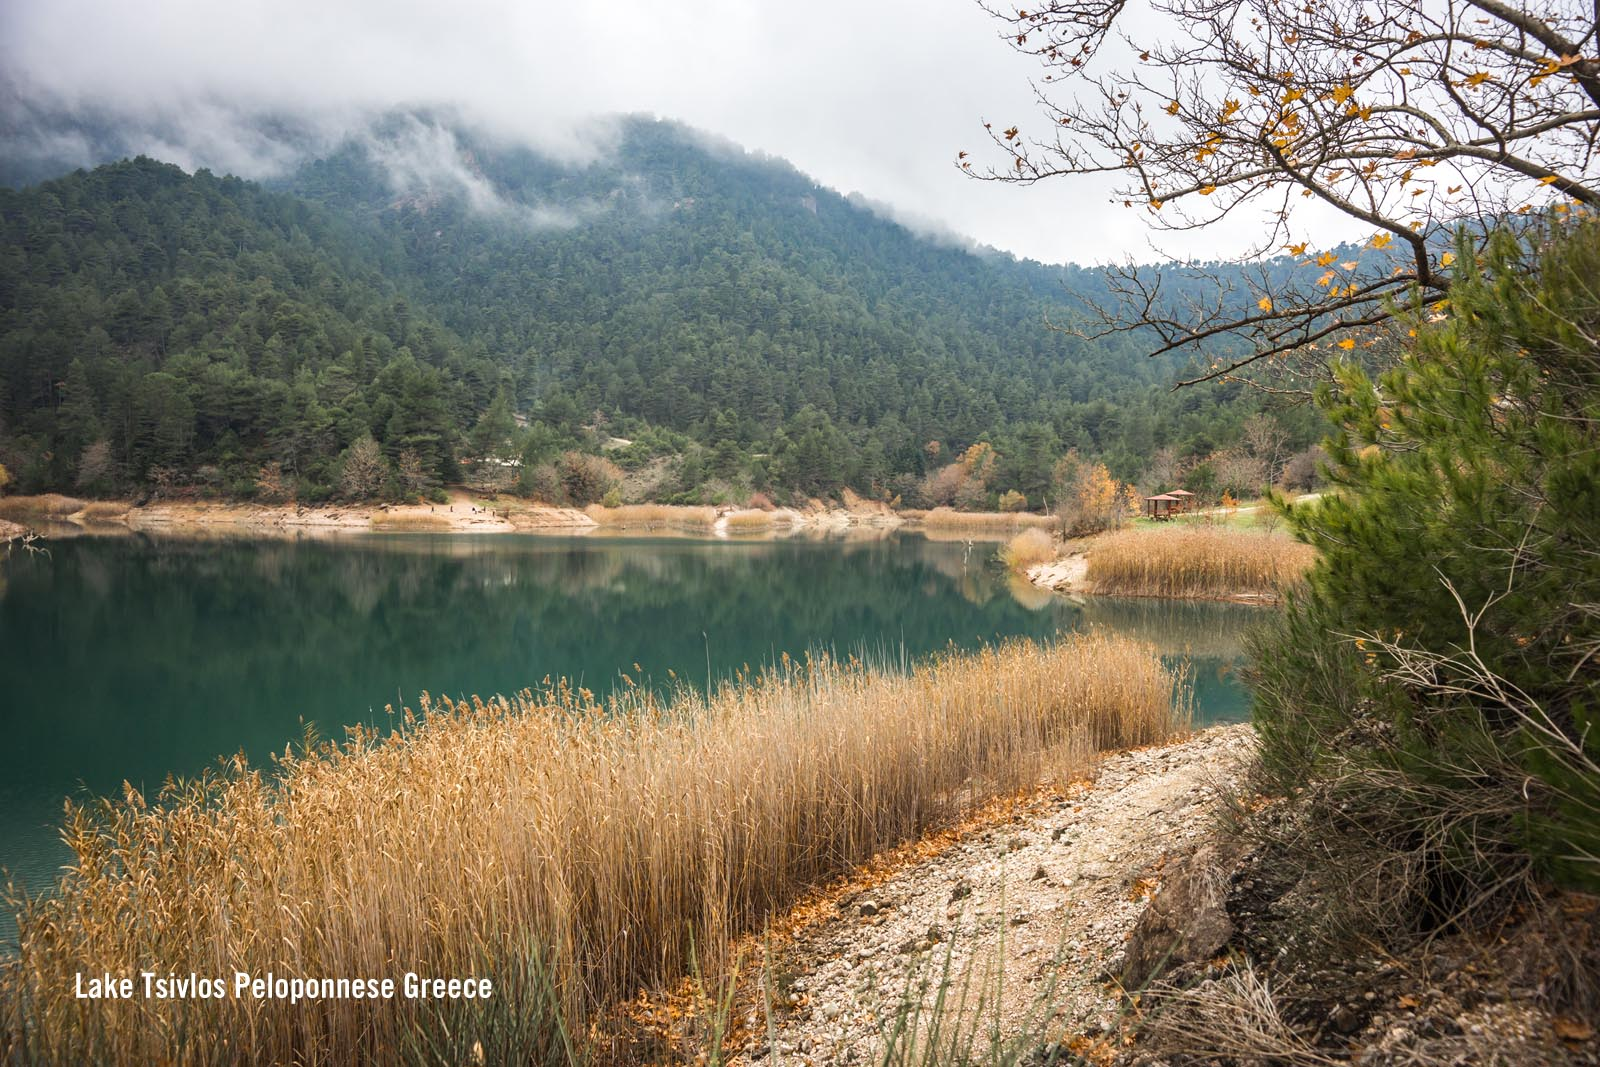 Enlarged - Lake Tsivlos Peloponnese Greece